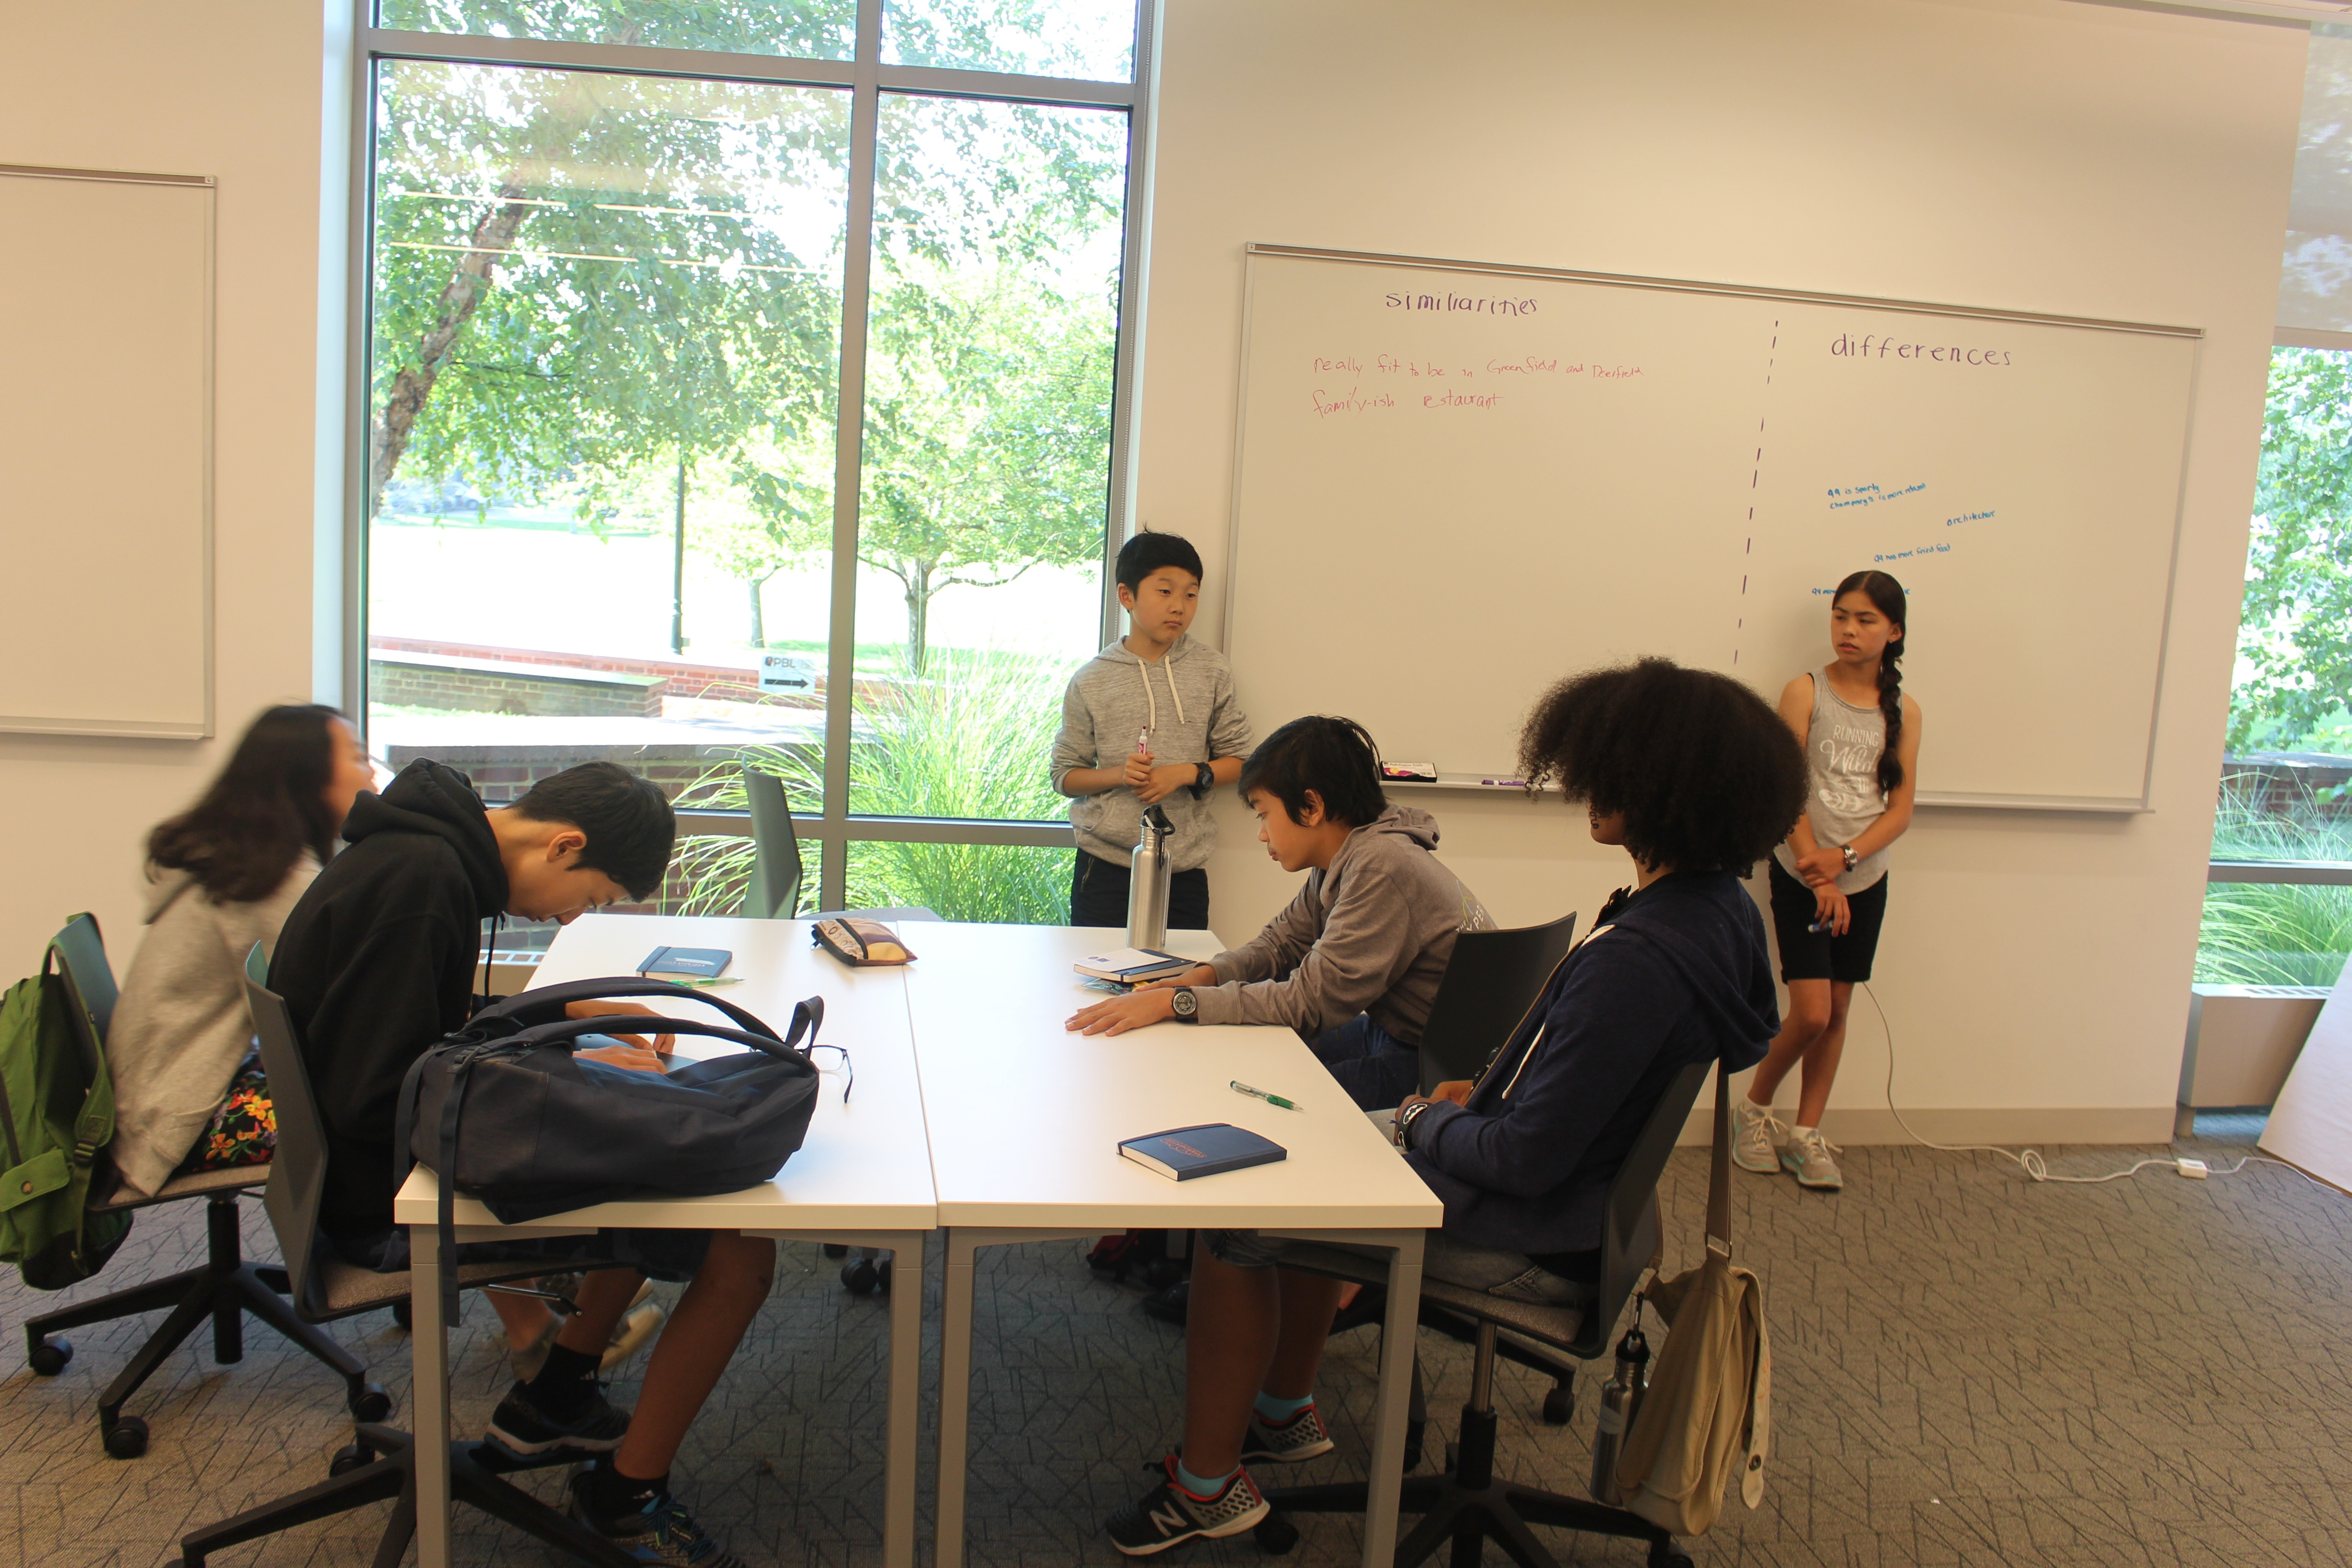 Back in the classroom, students discuss what they learned about sustainable food and culture.